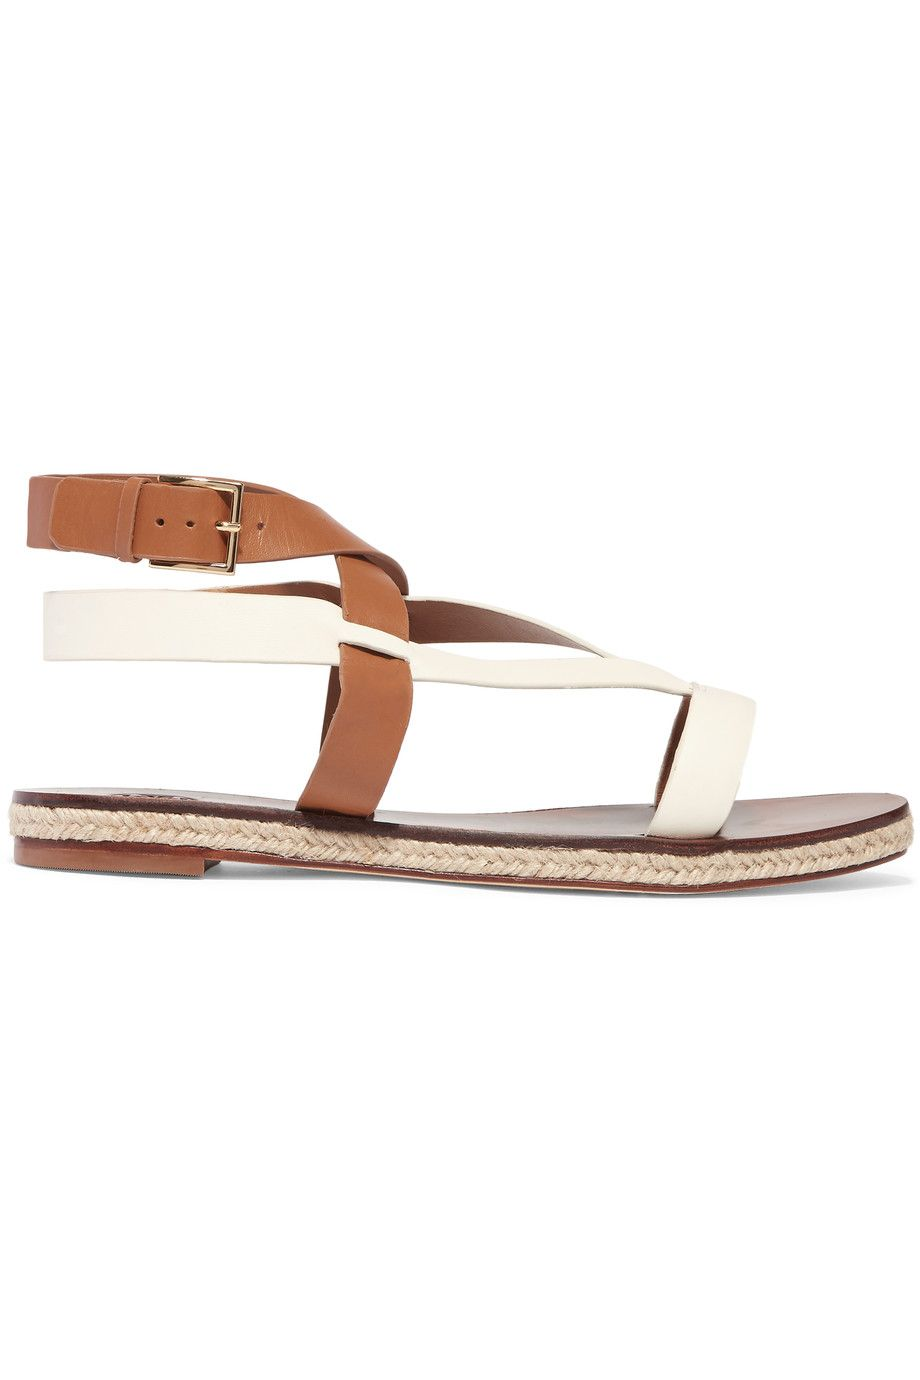 TORY BURCH Marbella Two-Tone Leather Sandals. #toryburch #shoes #sandals